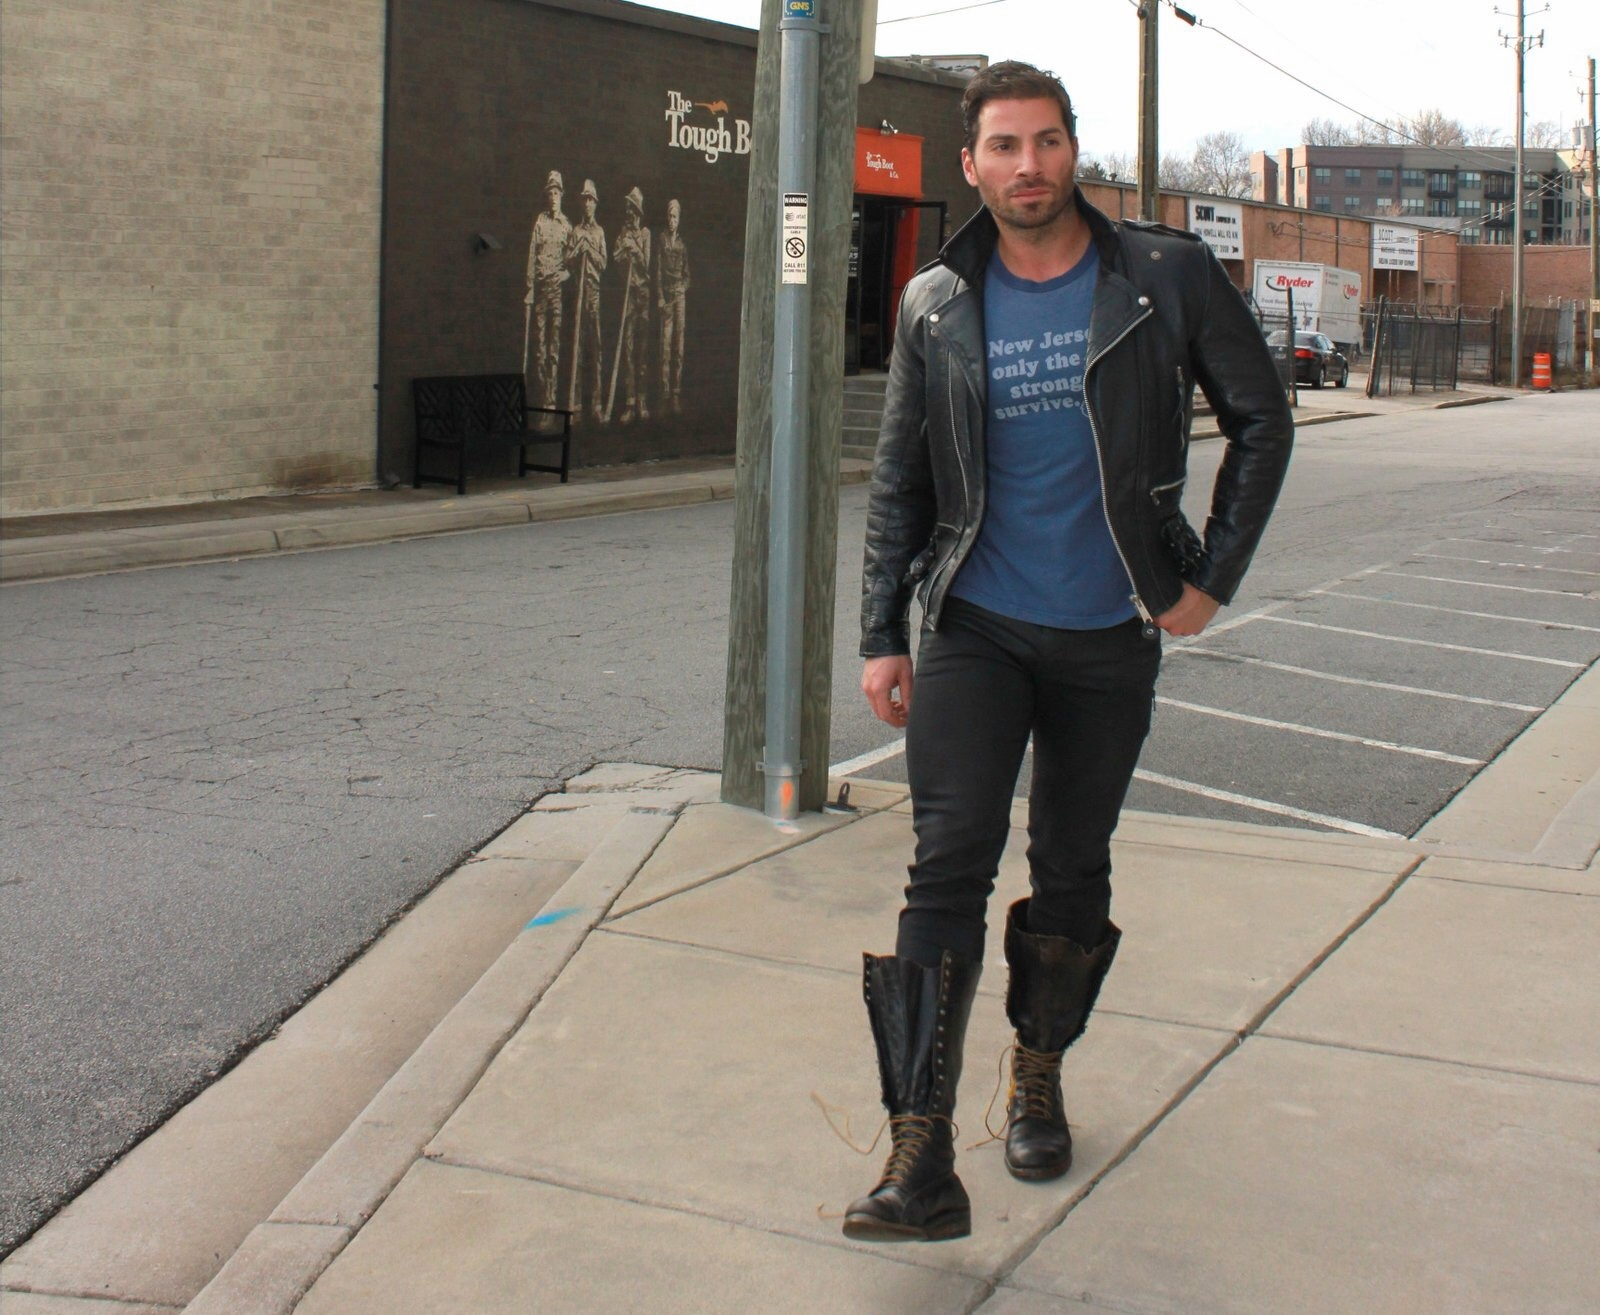 Shot on location   west midtown   the tough boot   clothes by the tough boot   photographed by maryan aiken for paperglass.